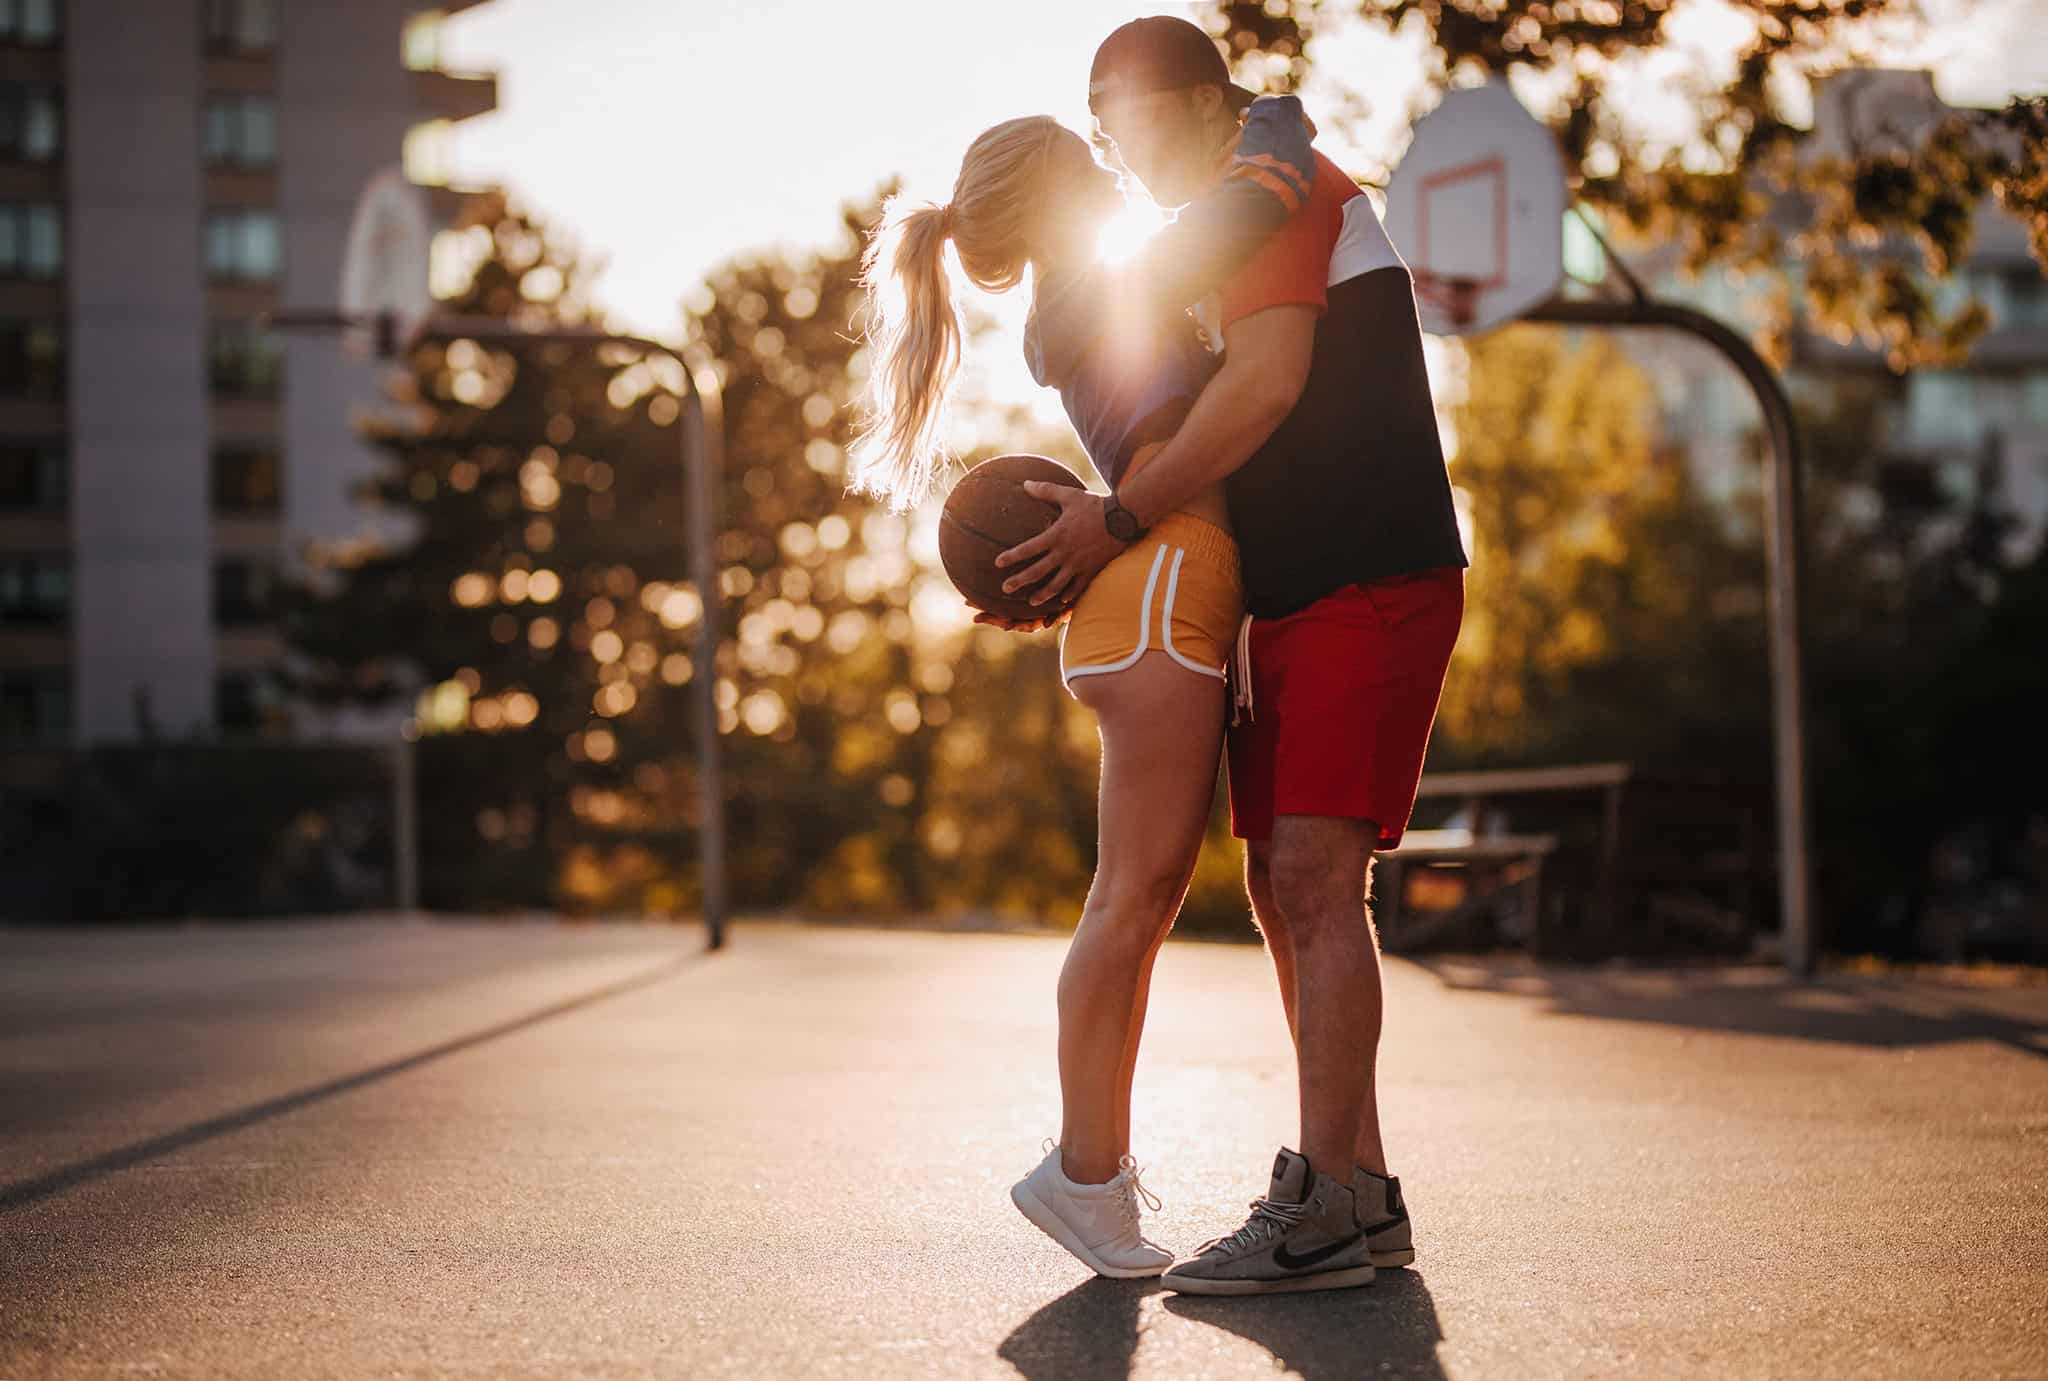 Couple Poses kissing on a basketball court